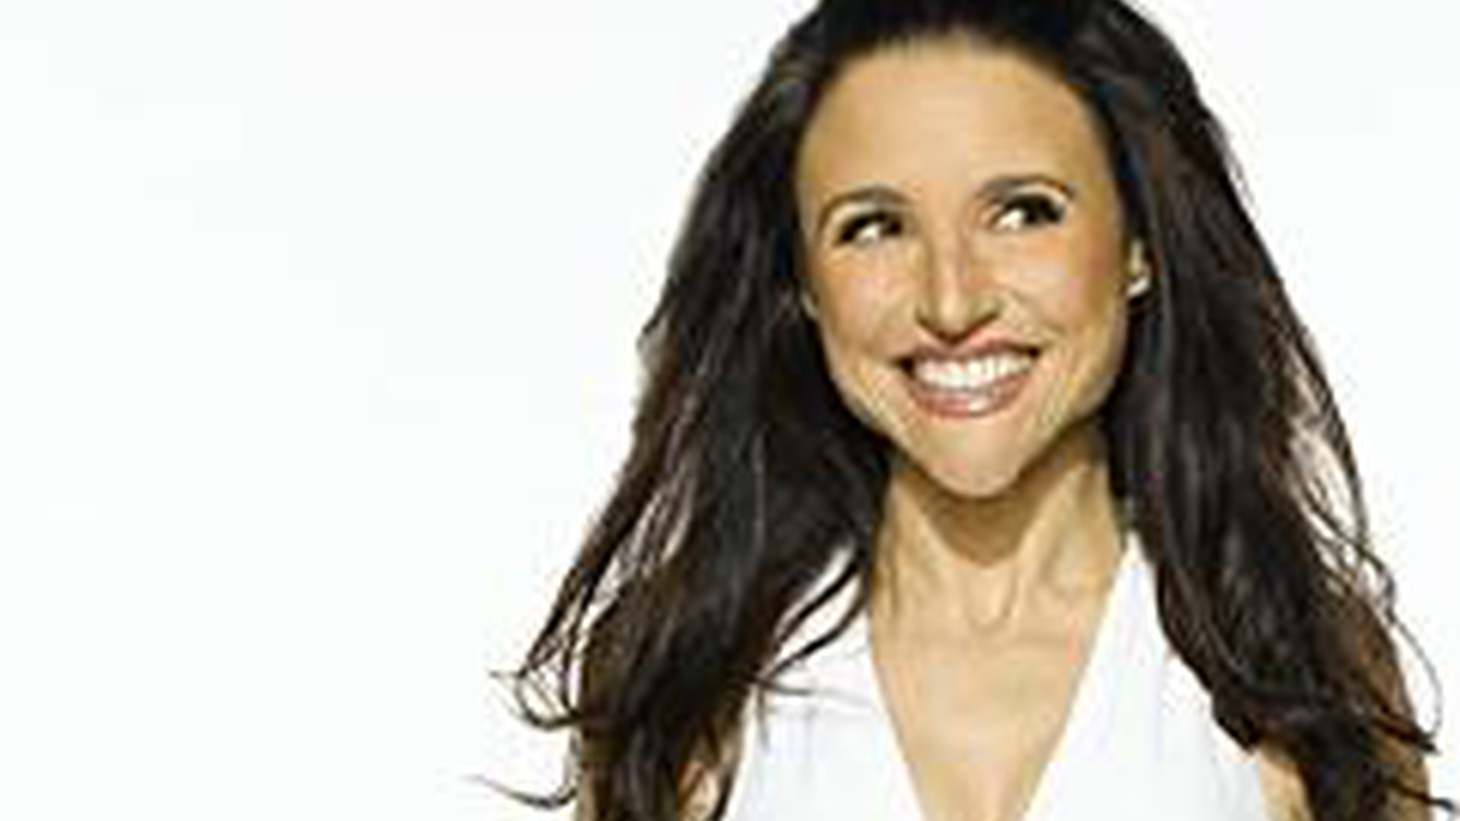 Though Seinfeld and The New Adventures of Old Christine are different shows, both took times to catch on. Julia Jouis-Dreyfus talks about the move from cult hit to the mainstream.